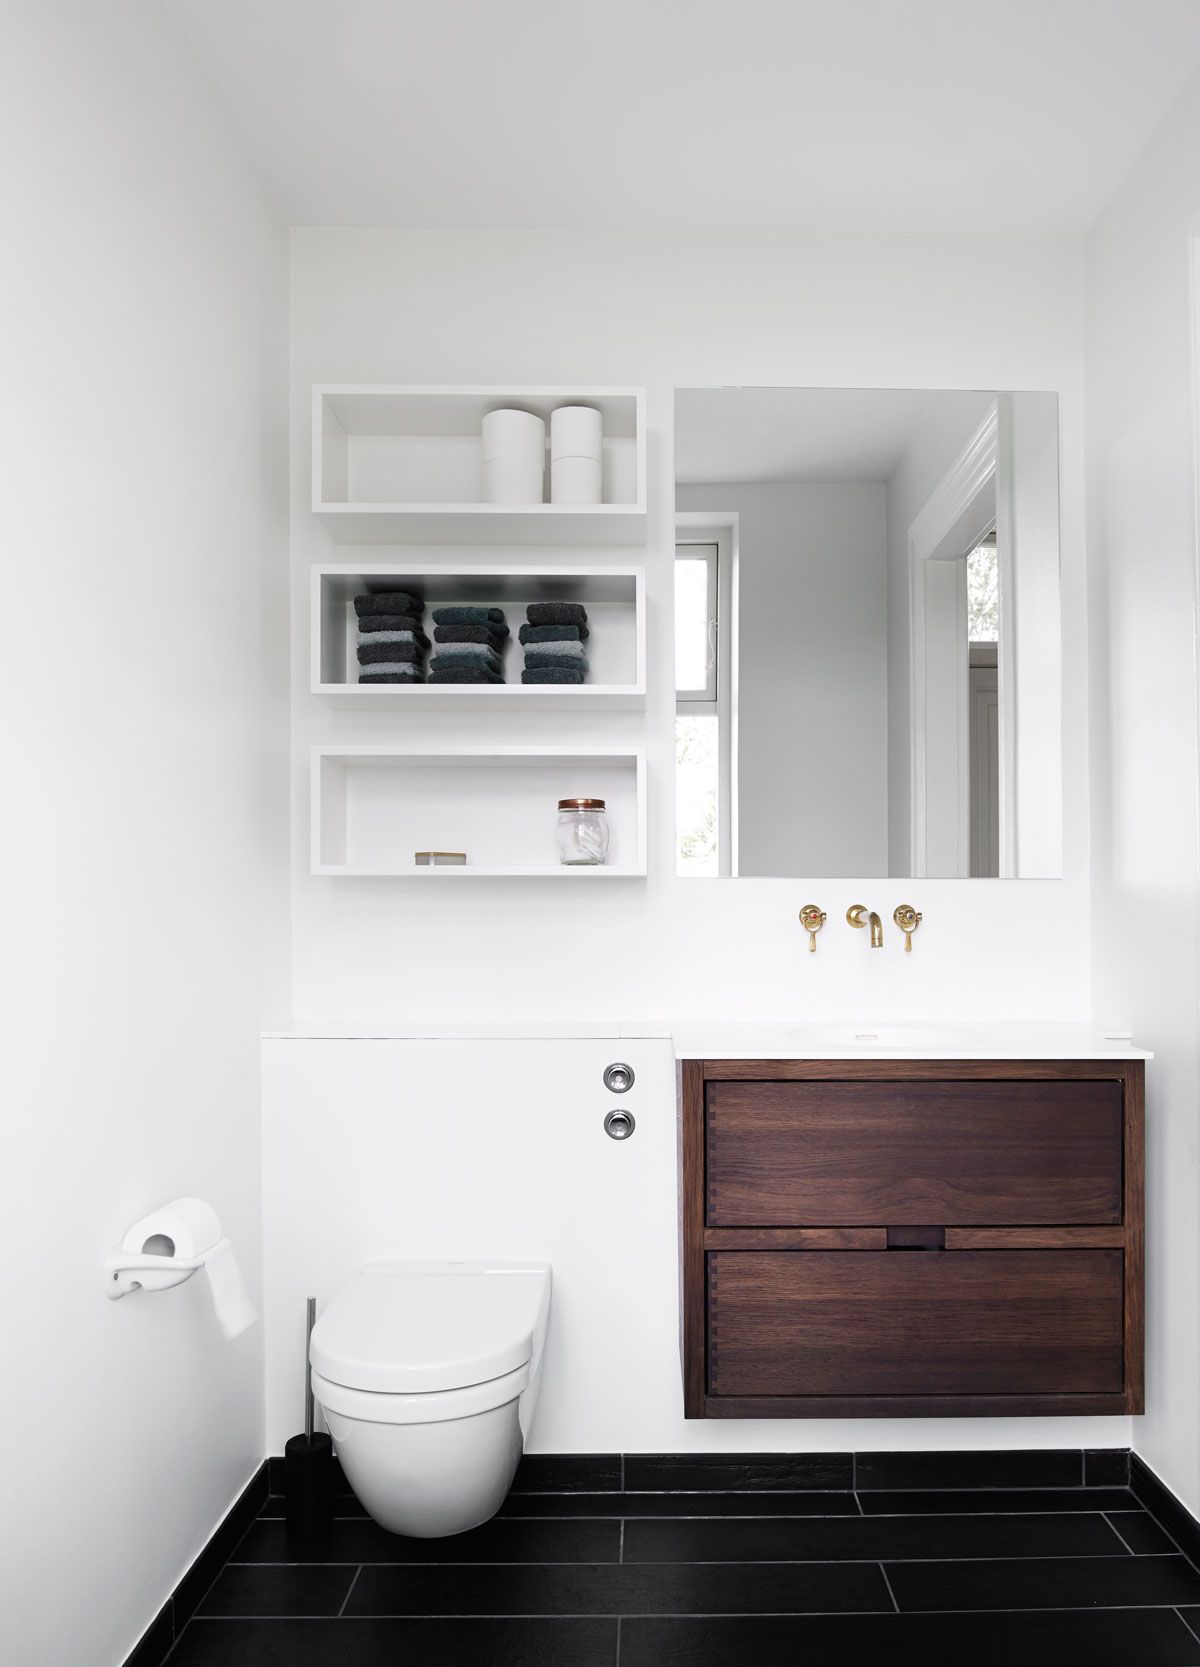 Small Bathroom Solutions Storage Shelves Above Toilet, Ledge Above Toilet,  Large Draws, Gold Plumbing, Add Storage Behind Mirror   YES!